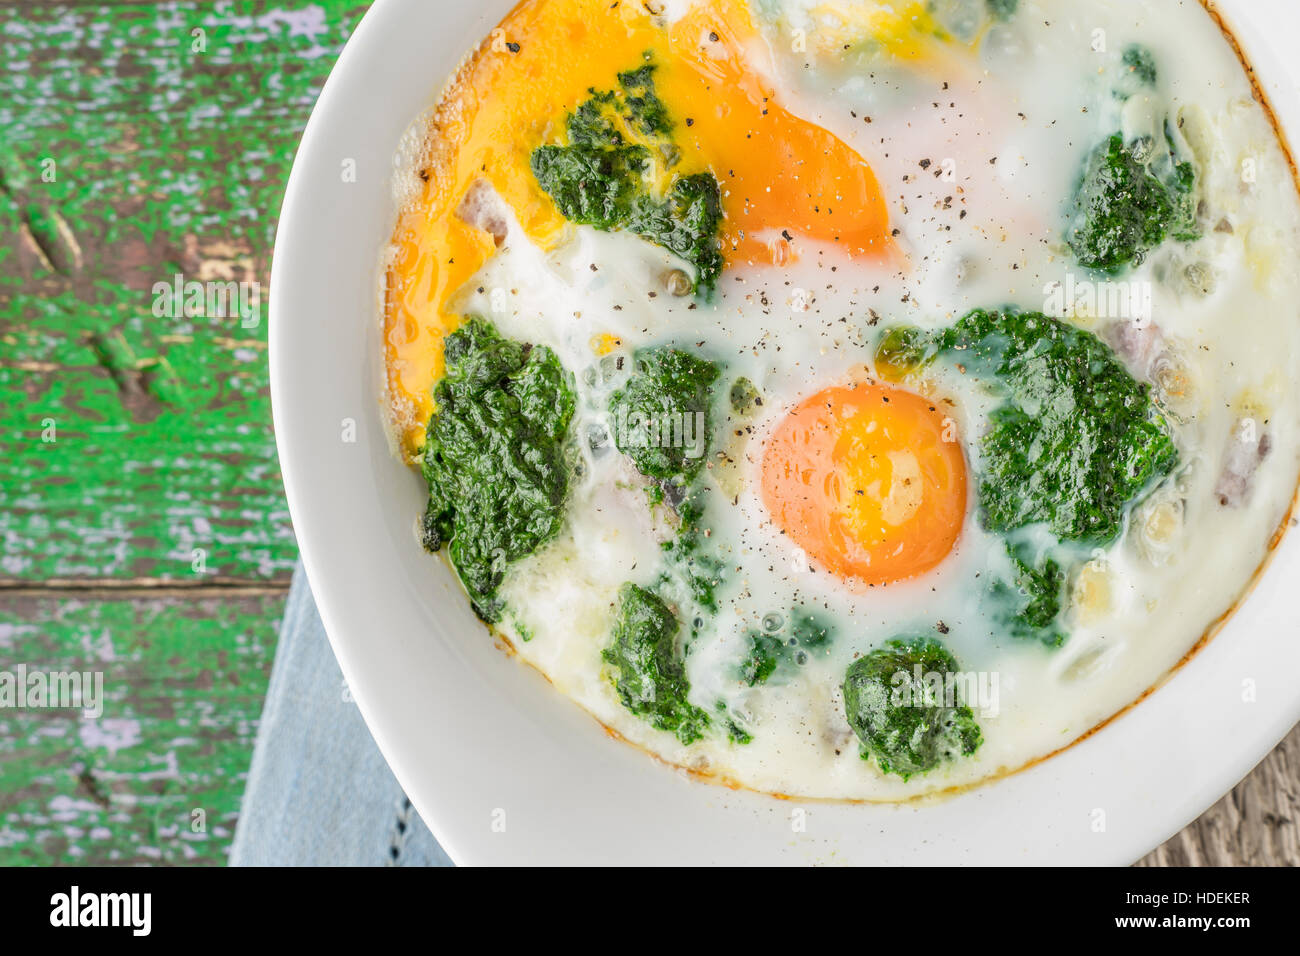 Florentine eggs with pureed spinach on the wooden table - Stock Image